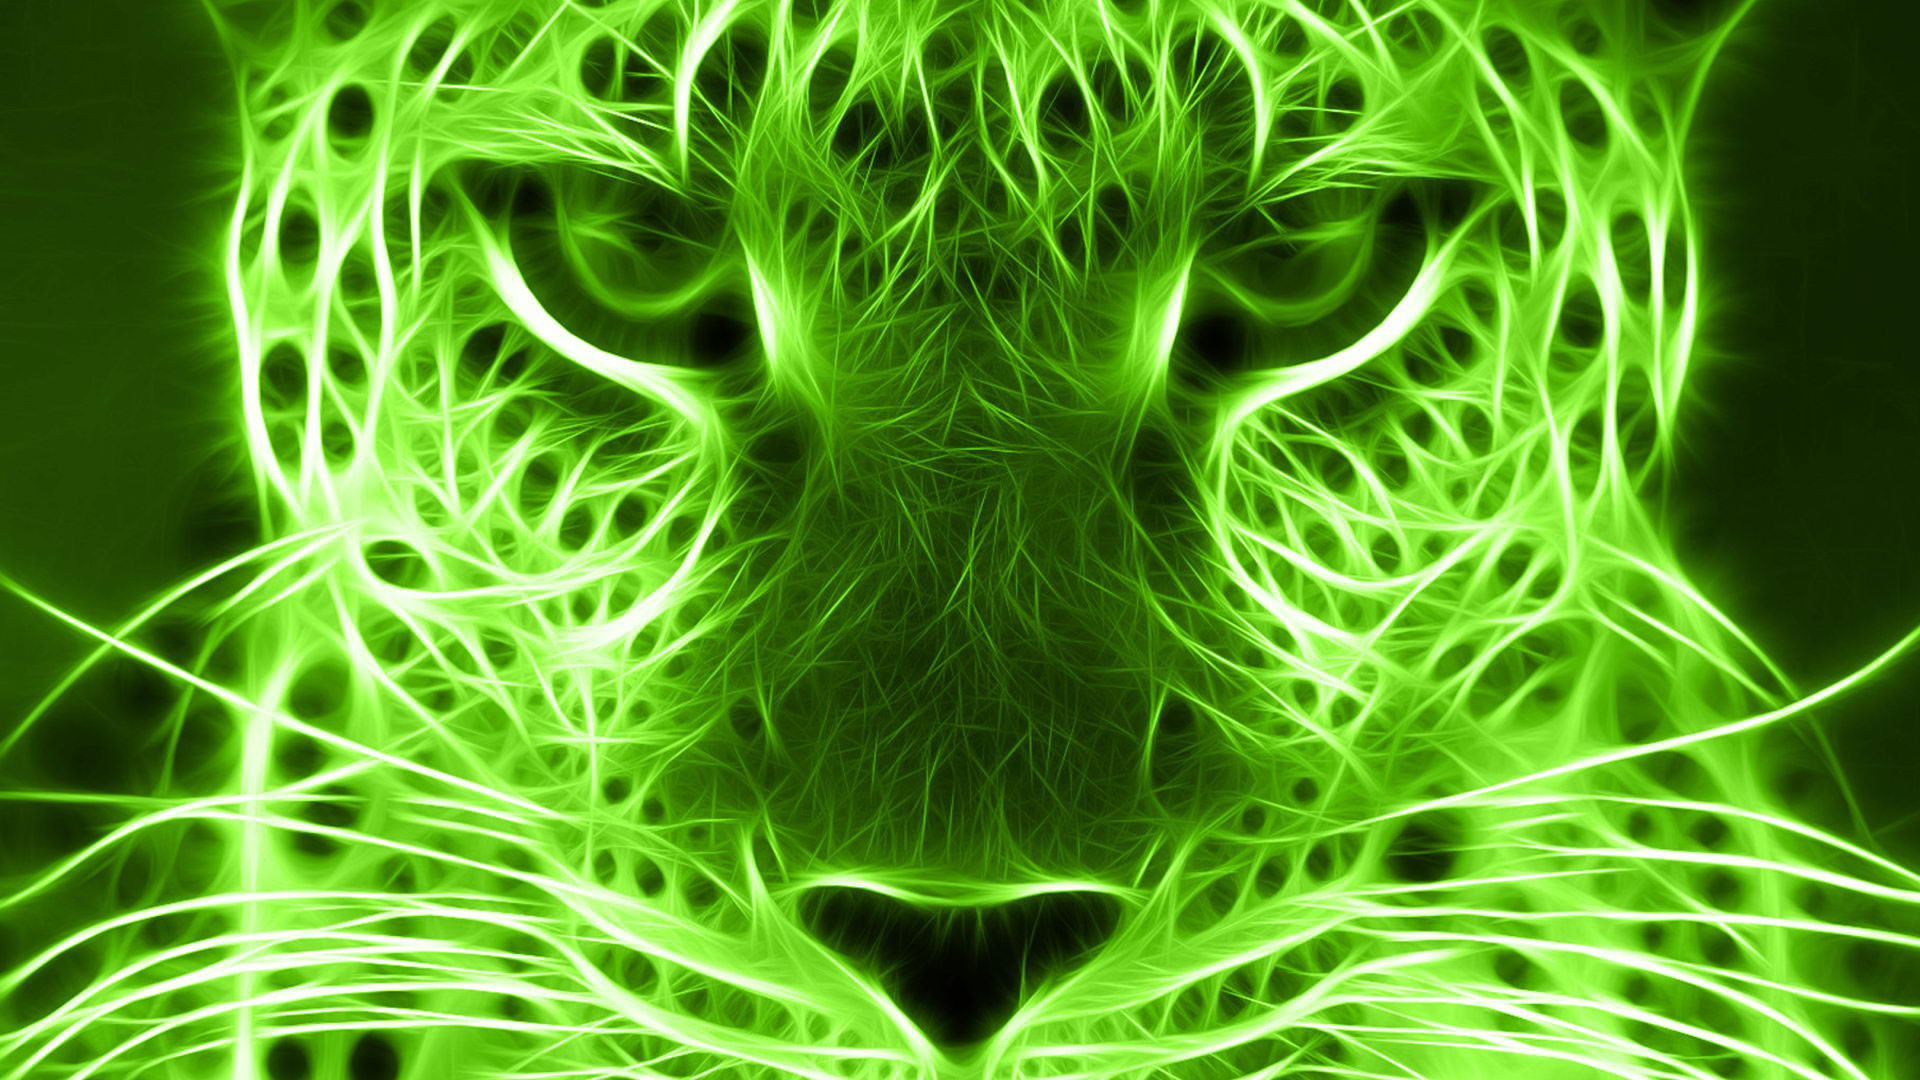 neon green background (55+ images)